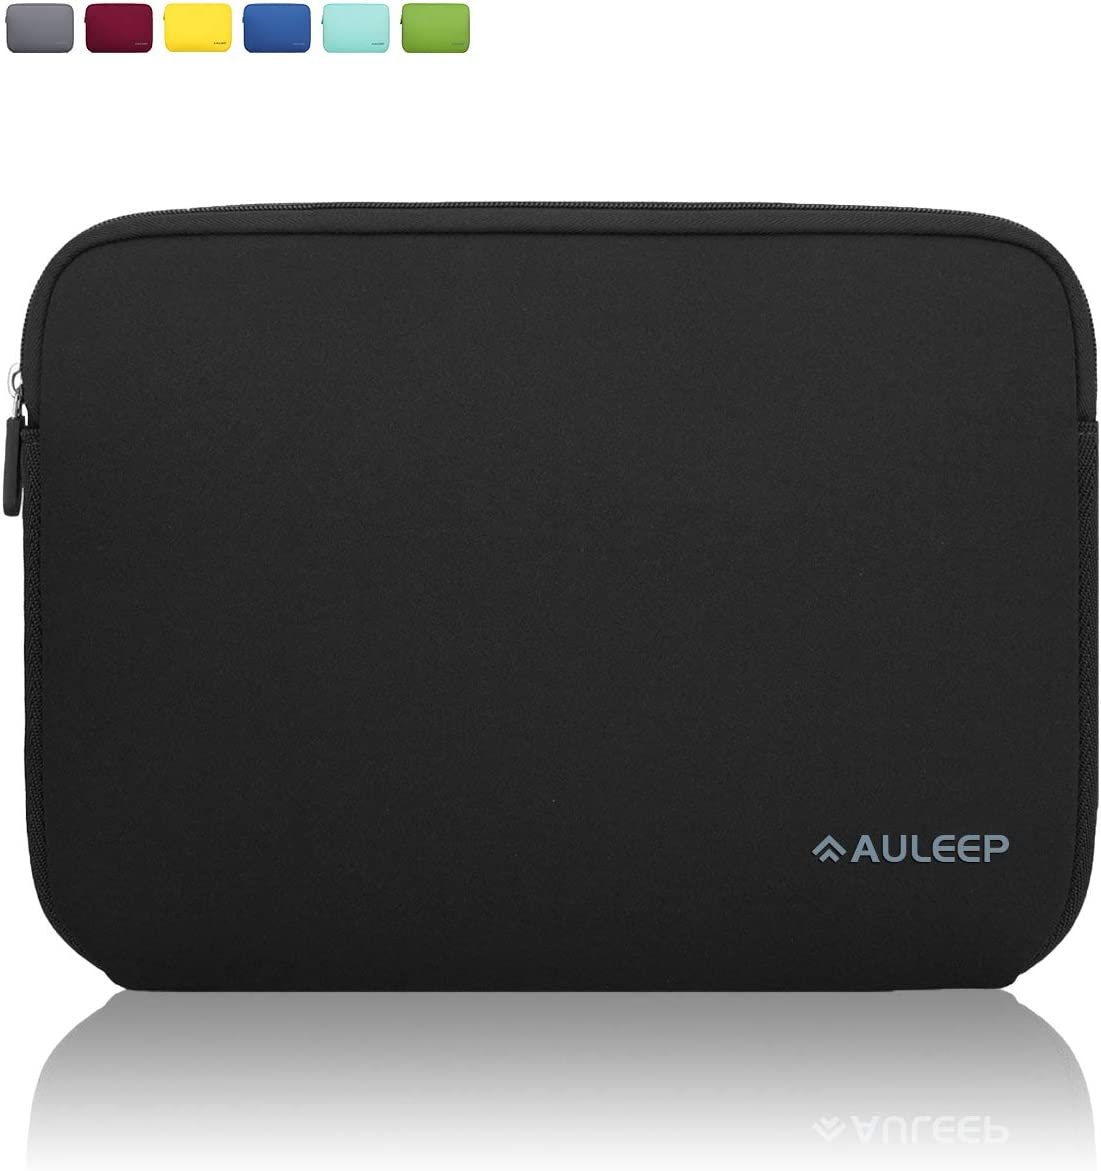 AULEEP 15-15.6 Inch Laptop Sleeves, Neoprene Notebook Computer Pocket Tablet Carrying Sleeve/Water-Resistant Compatible Laptop Sleeve for Acer/Asus/Dell/Lenovo/HP, Black